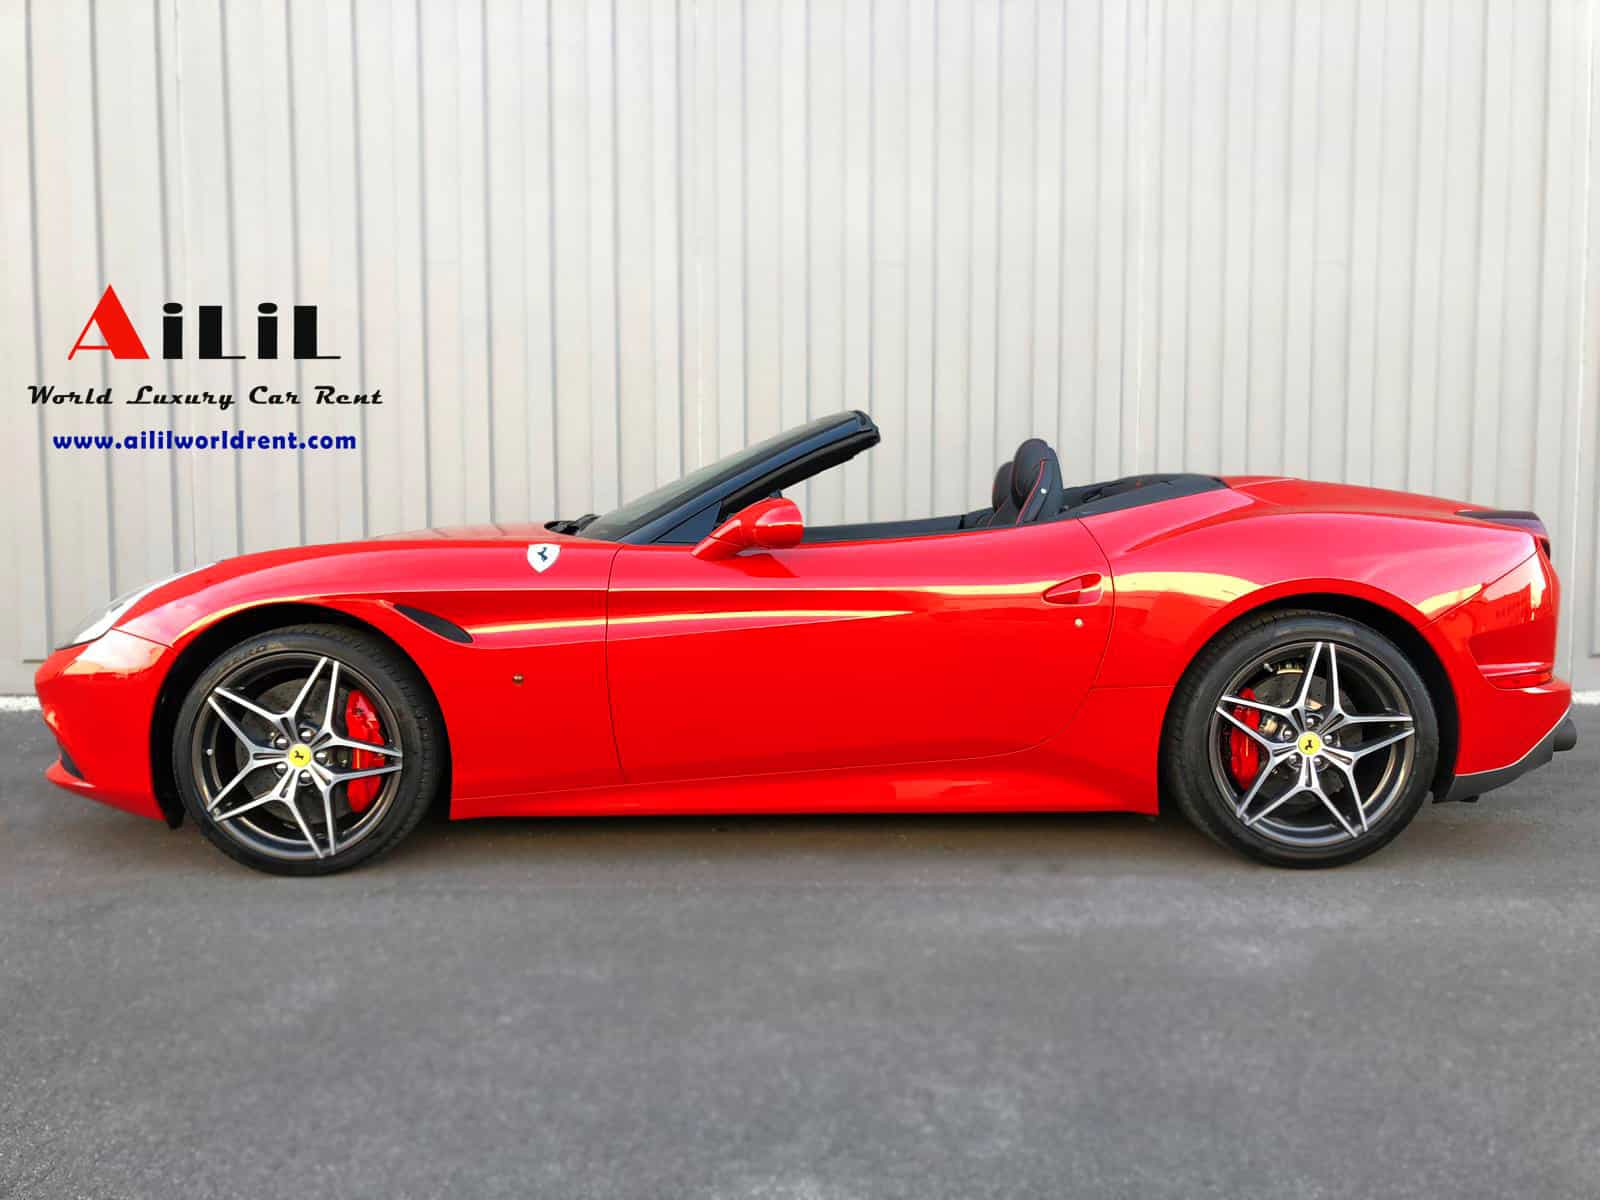 rent ferrari california t in monaco, monte-carlo ferrari car rental, where to drive ferrari in monaco